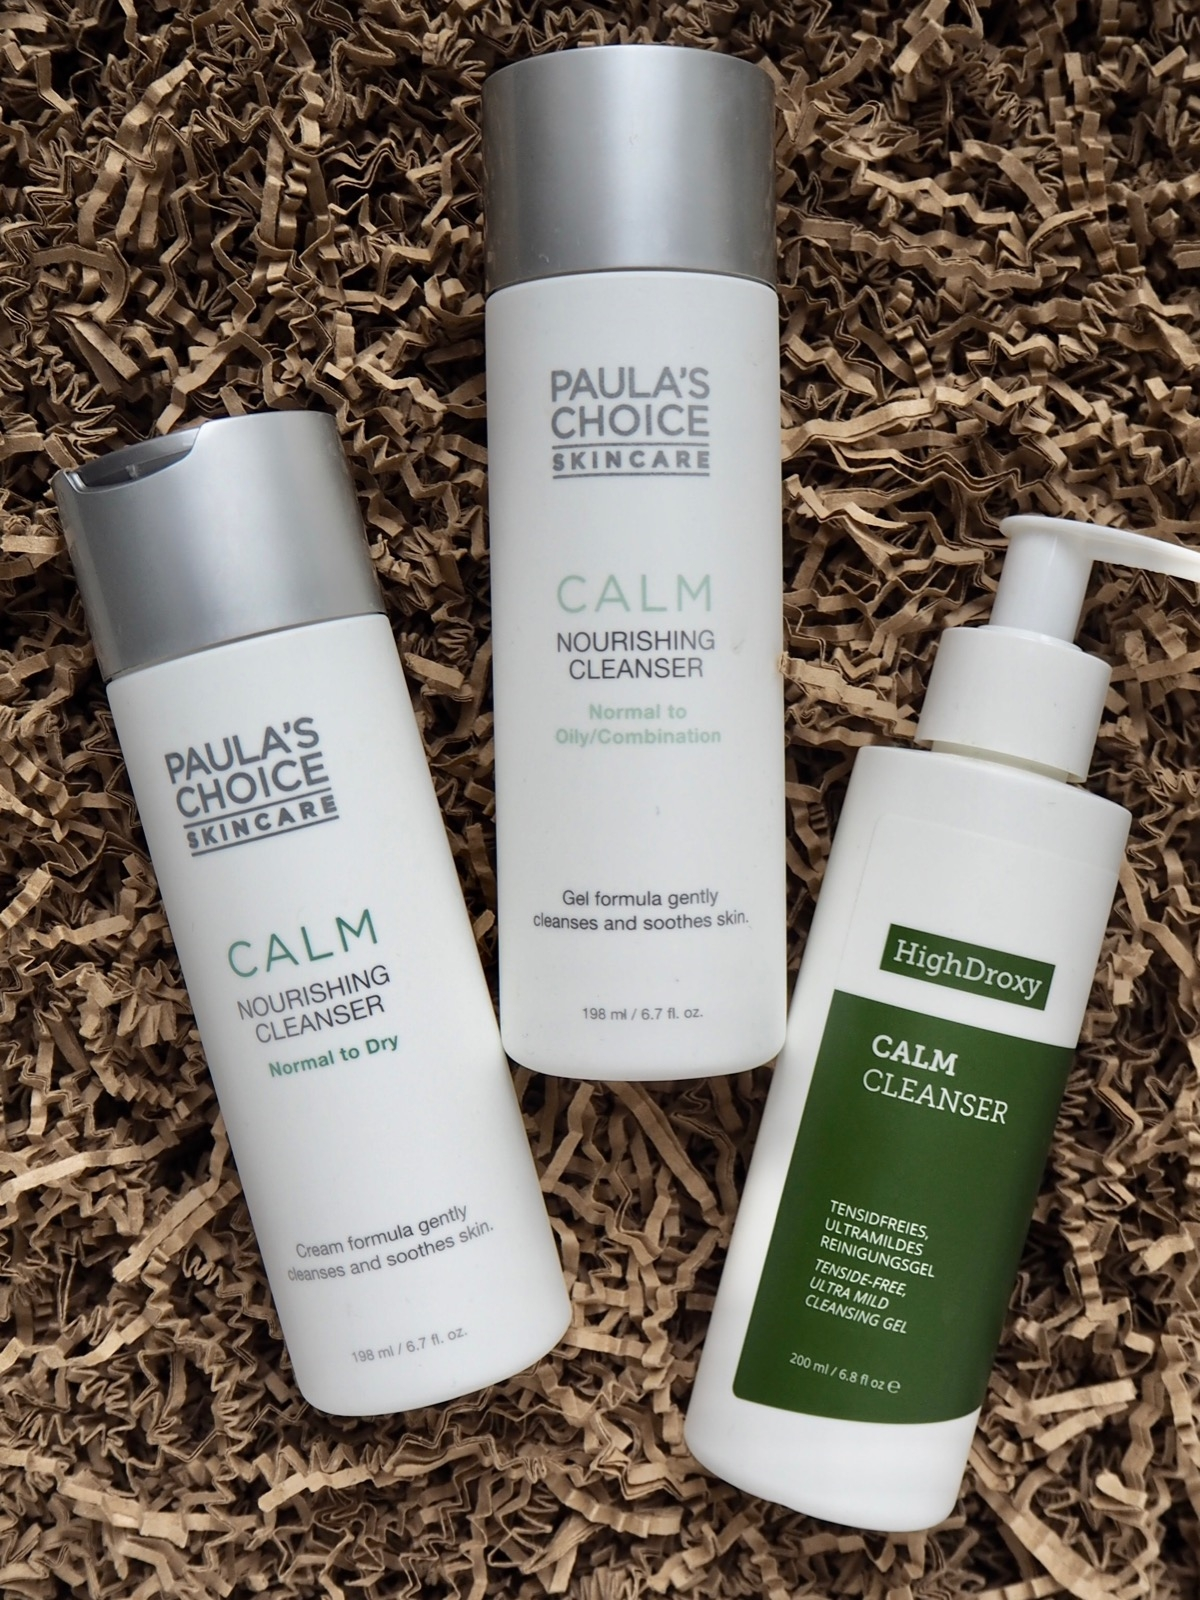 Paula's Choice CALM Nourishing Cleanser HighDroxy CALM Cleanser